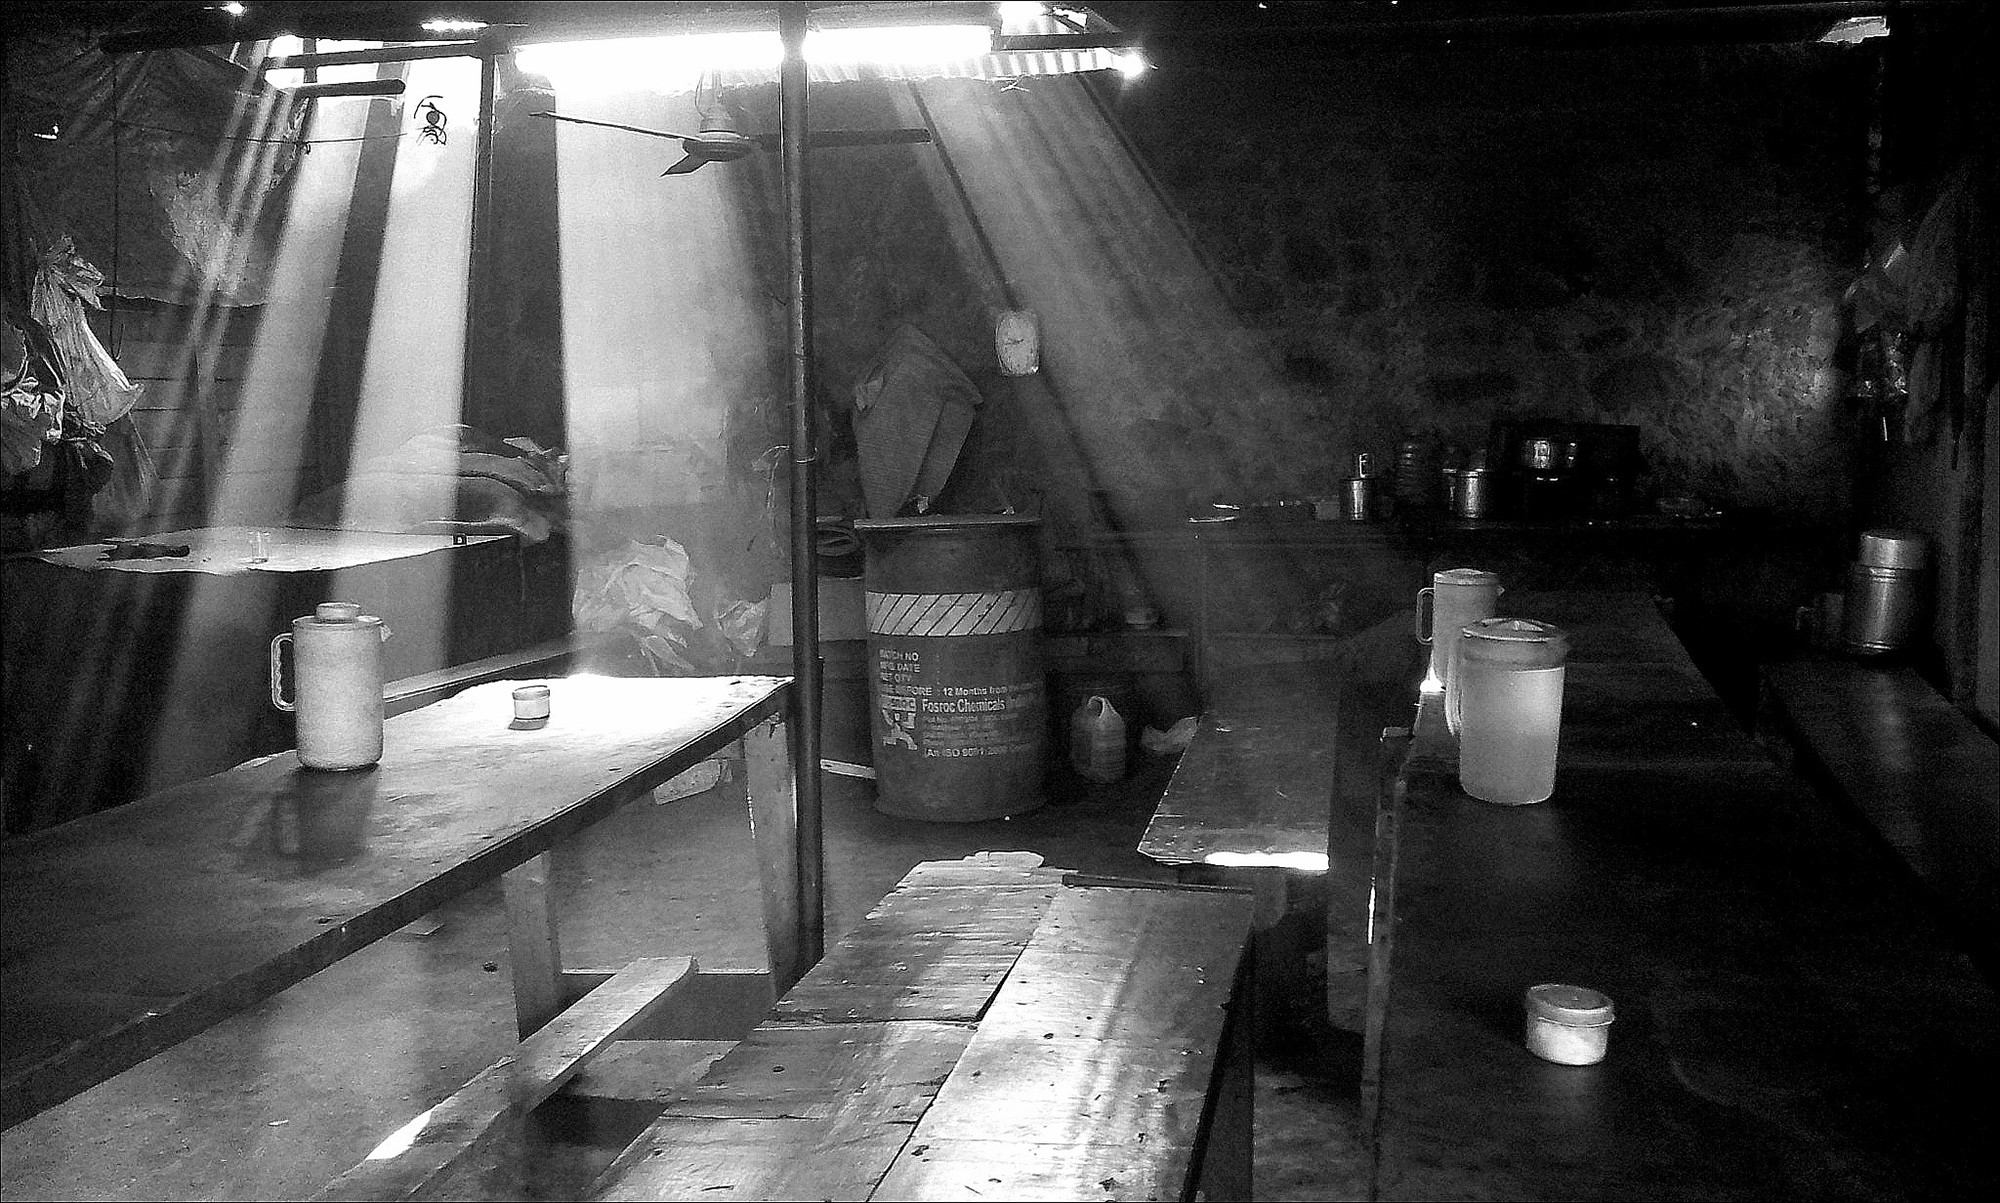 this shot was taken inside a makeshift canteen for  labourers.beams of sun rays falling in the area through the opening of the tin roofs was creating beautiful drama worth capturing